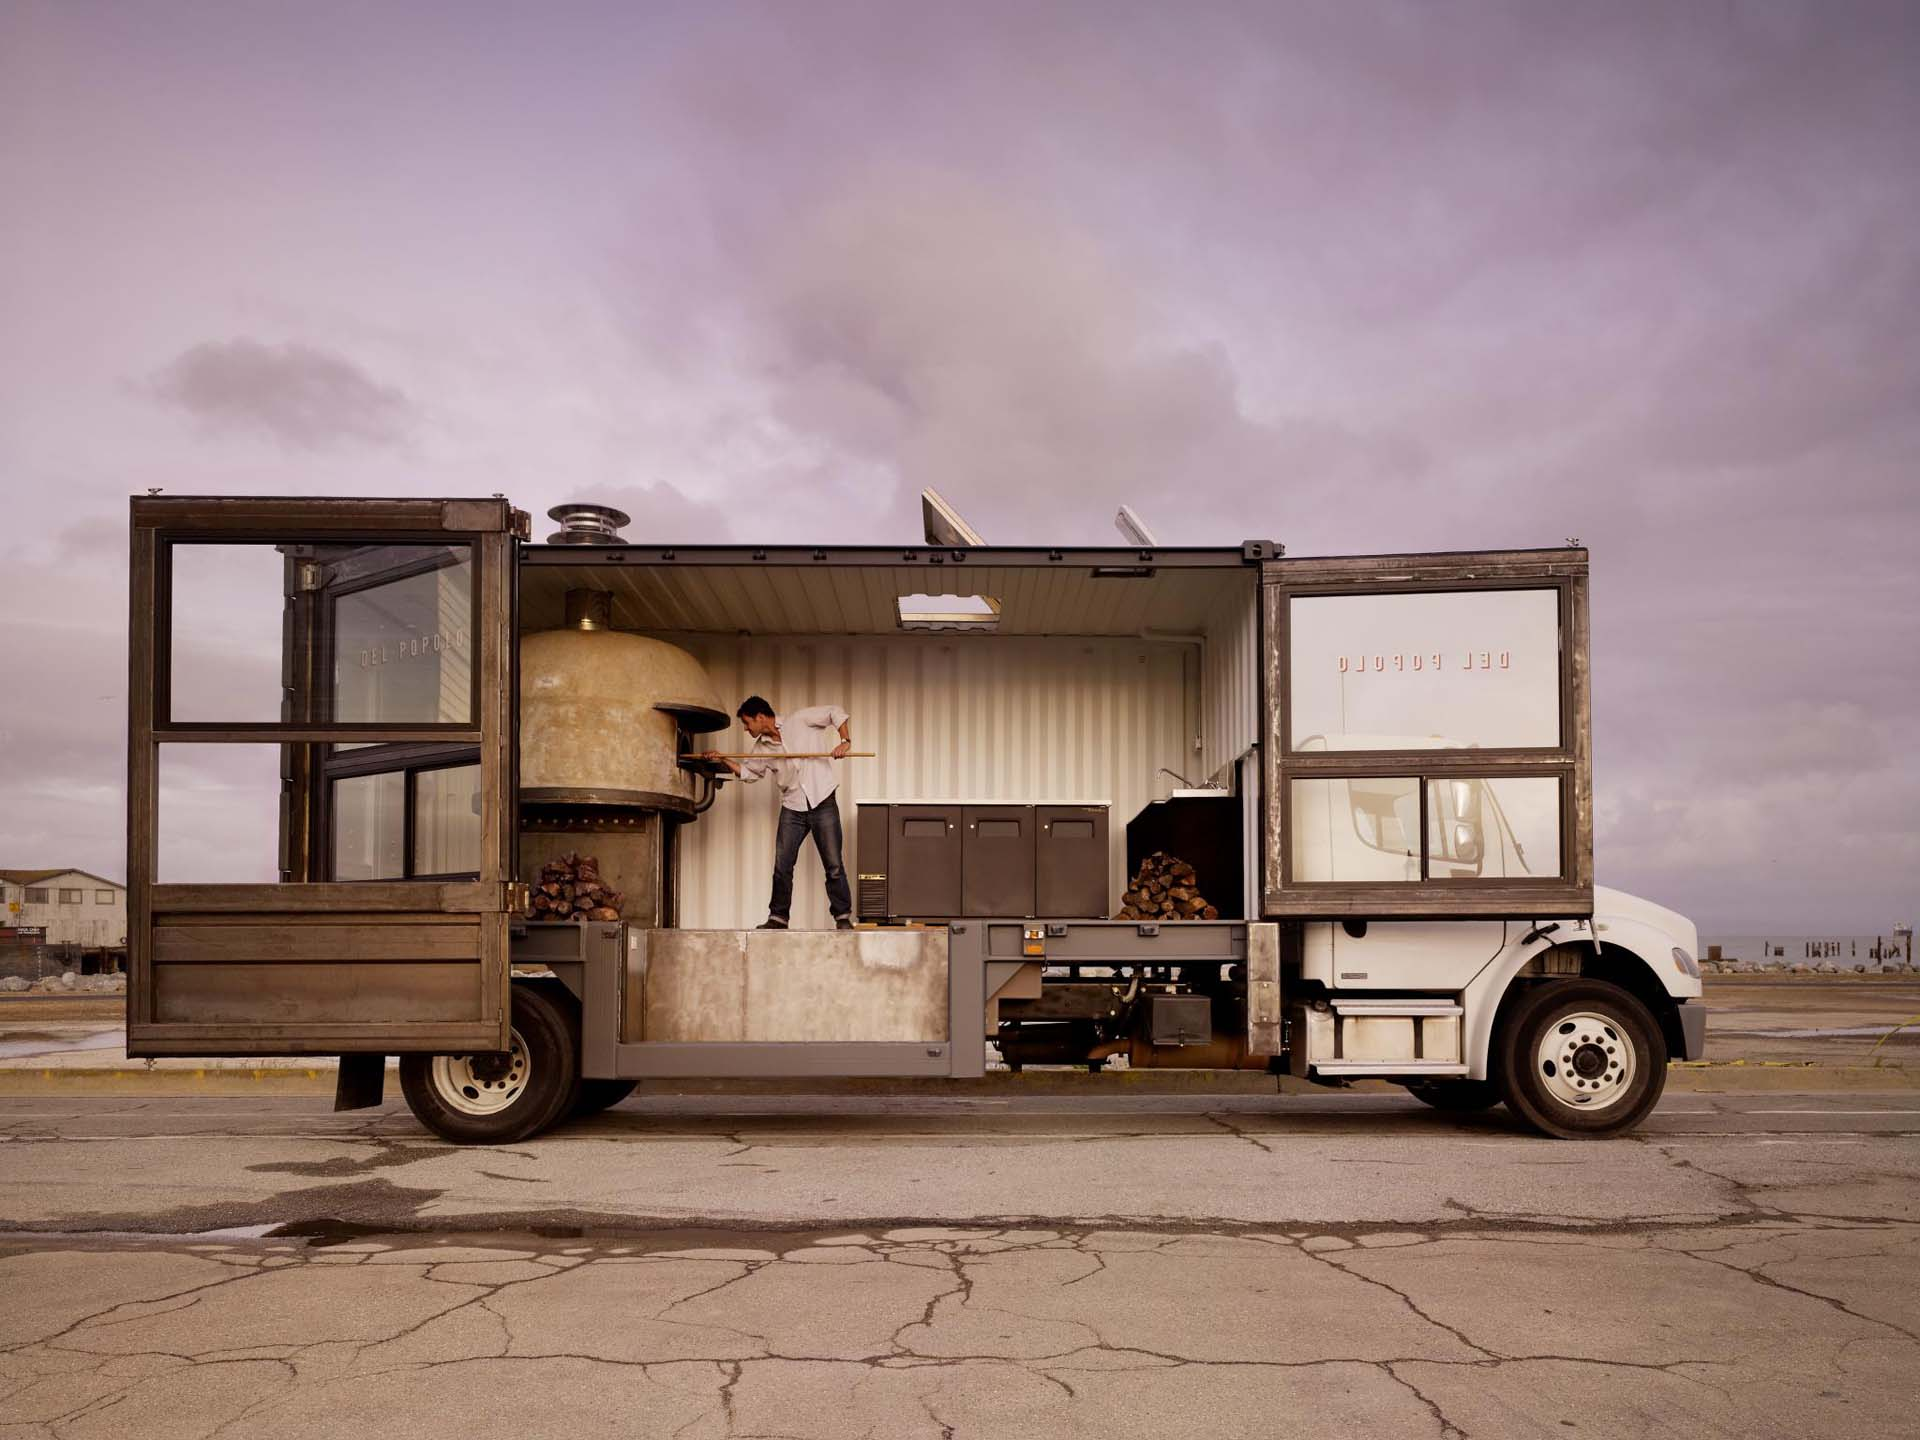 Also taking the classy and minimalist avenue is the Del Popolo pizza truck, which is clean and modern, while serving up fresh-baked pizza from a brick oven that dominates its kitchen like a centrepiece in an art gallery. Del Popolo's pizza truck is also unique in that its kitchen revolved around John Darsky's imported brick oven, which he wanted to take on the road, so he fitted it into a shipping container rather than a delivery truck, and it makes its rounds in San Francisco on the back of a Freightliner heavy commercial truck.